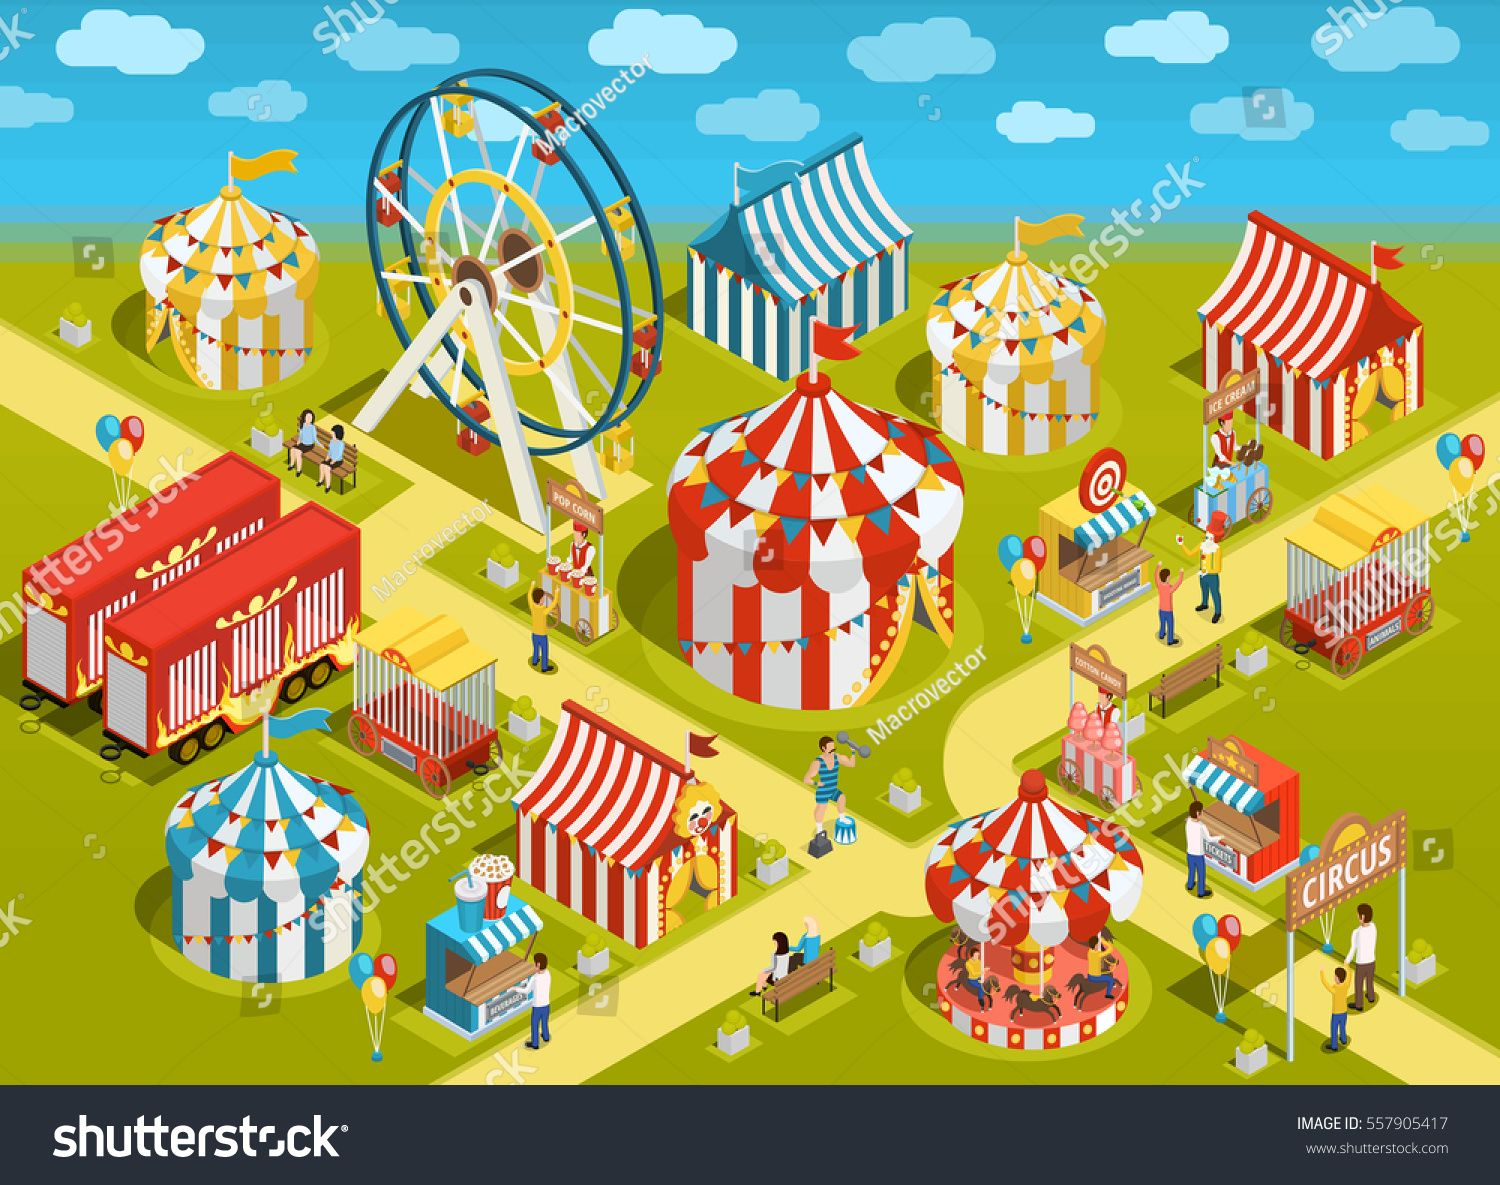 Amusement Park Travel Circus Attractions Colorful Isometric Poster